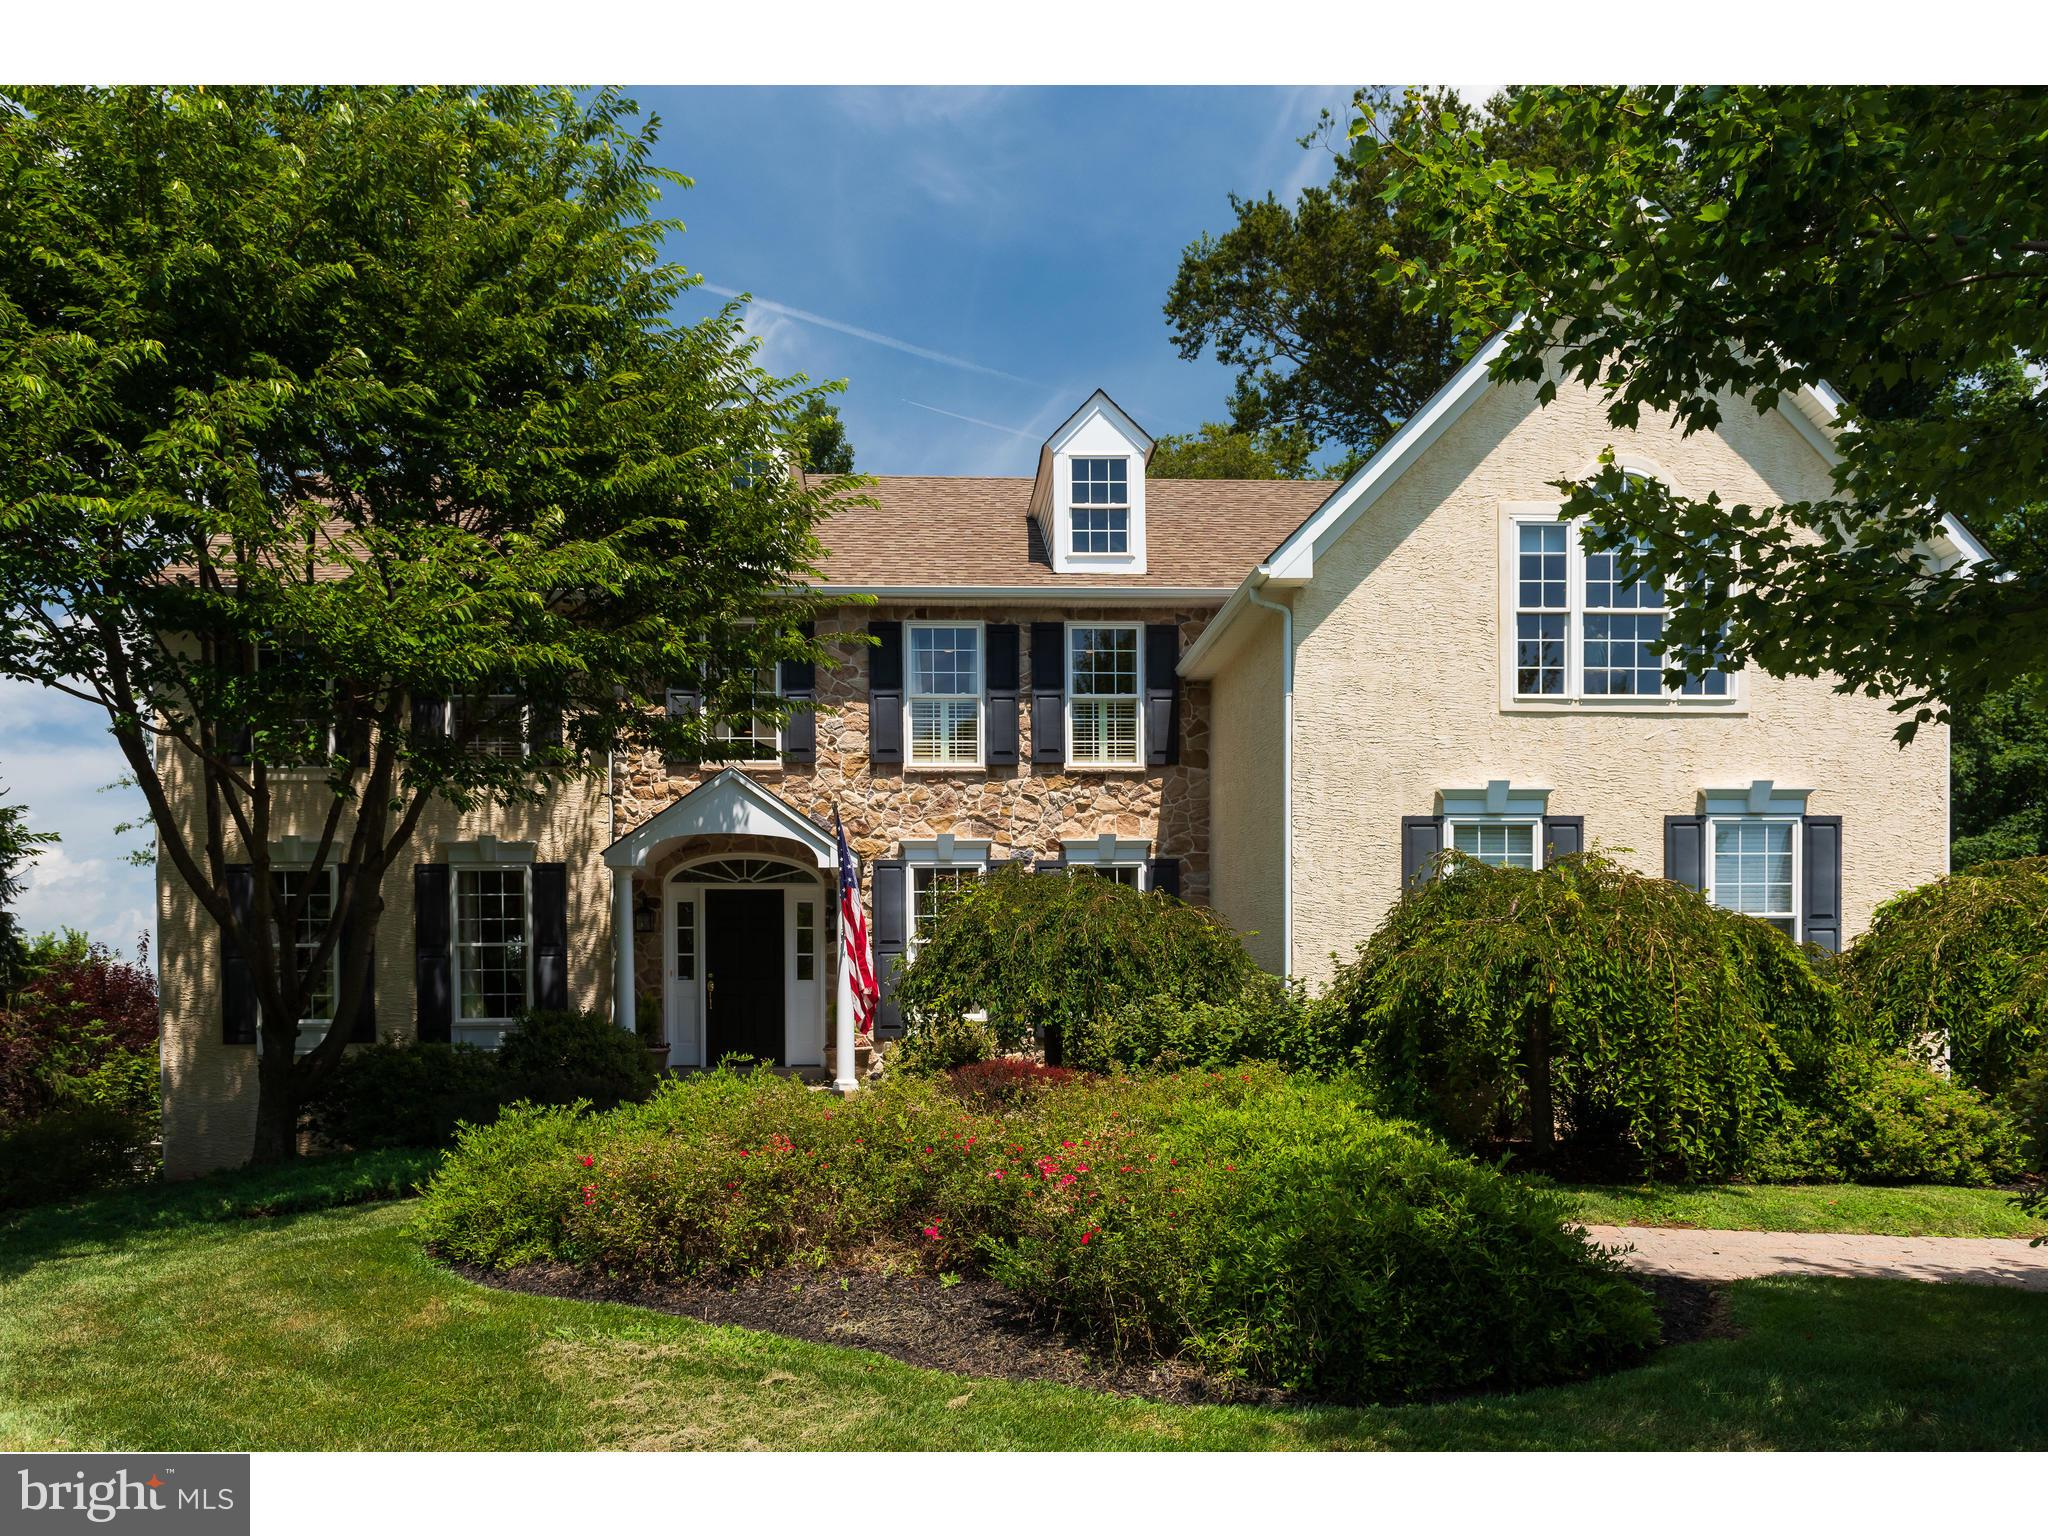 309 CENTURY OAK DRIVE, OXFORD, PA 19363